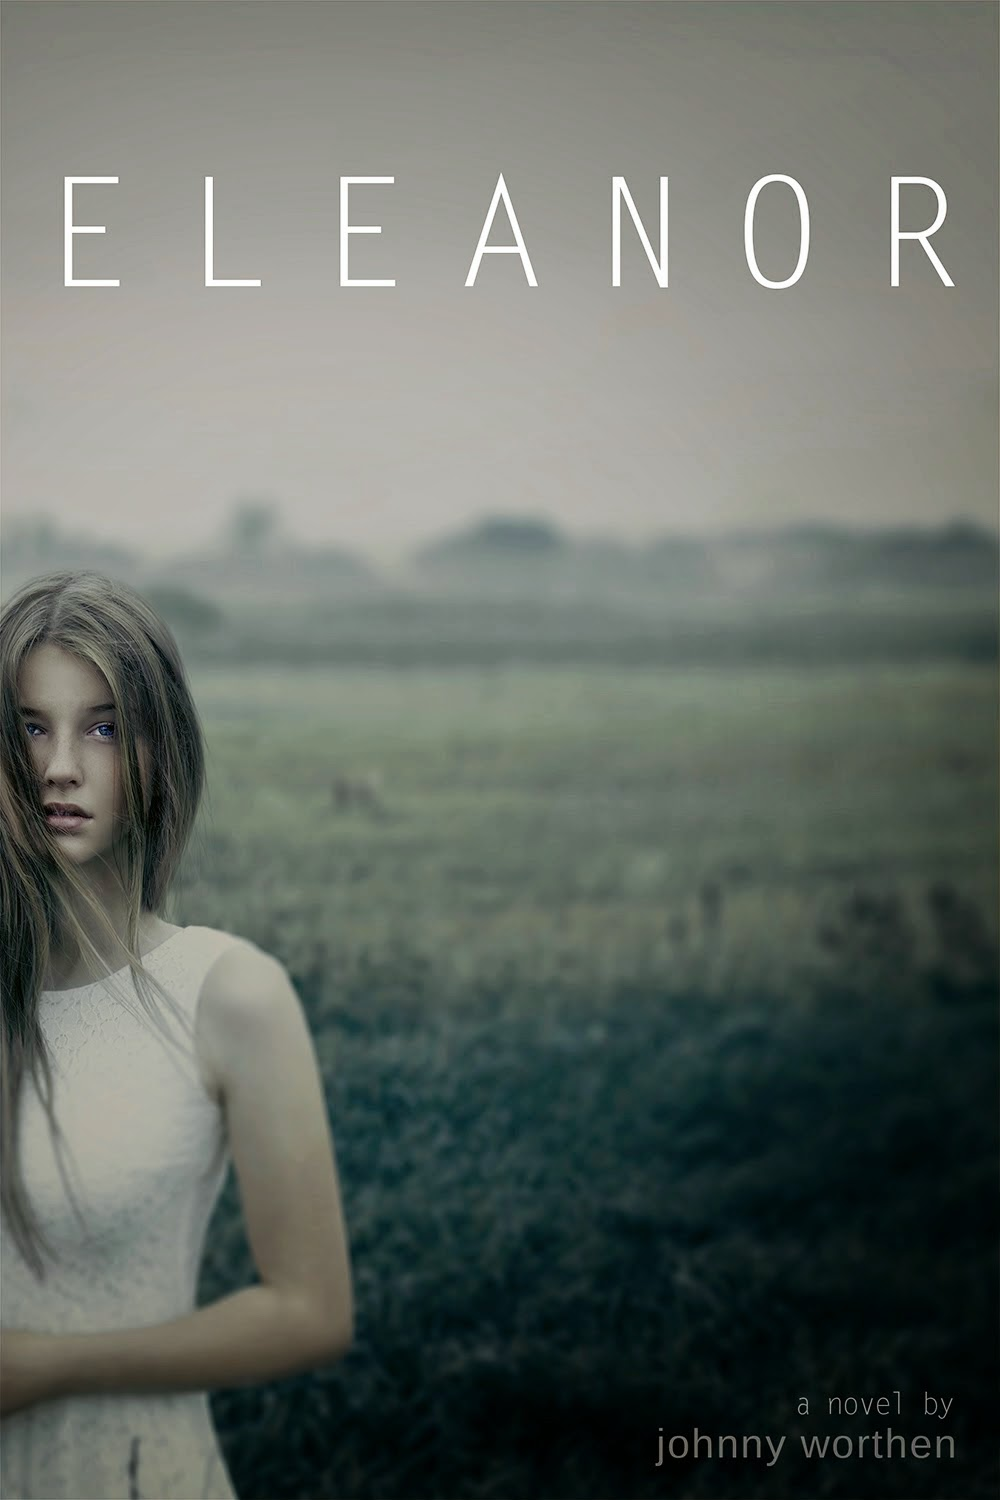 http://www.barnesandnoble.com/w/eleanor-johnny-worthen/1117389206?ean=9781939967343